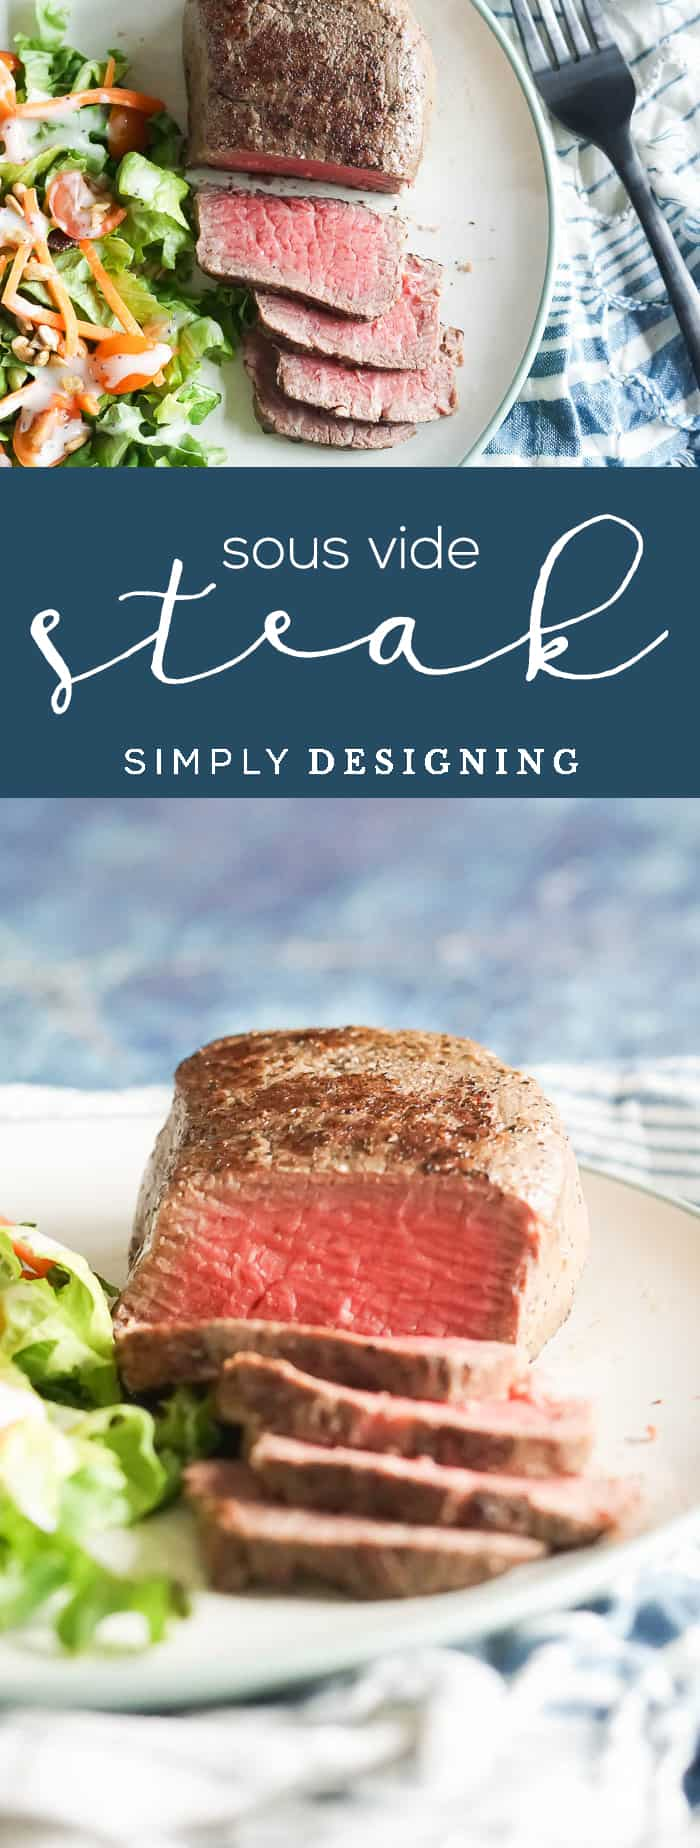 How to Sous Vide Steak - how to cook a perfect steak every time